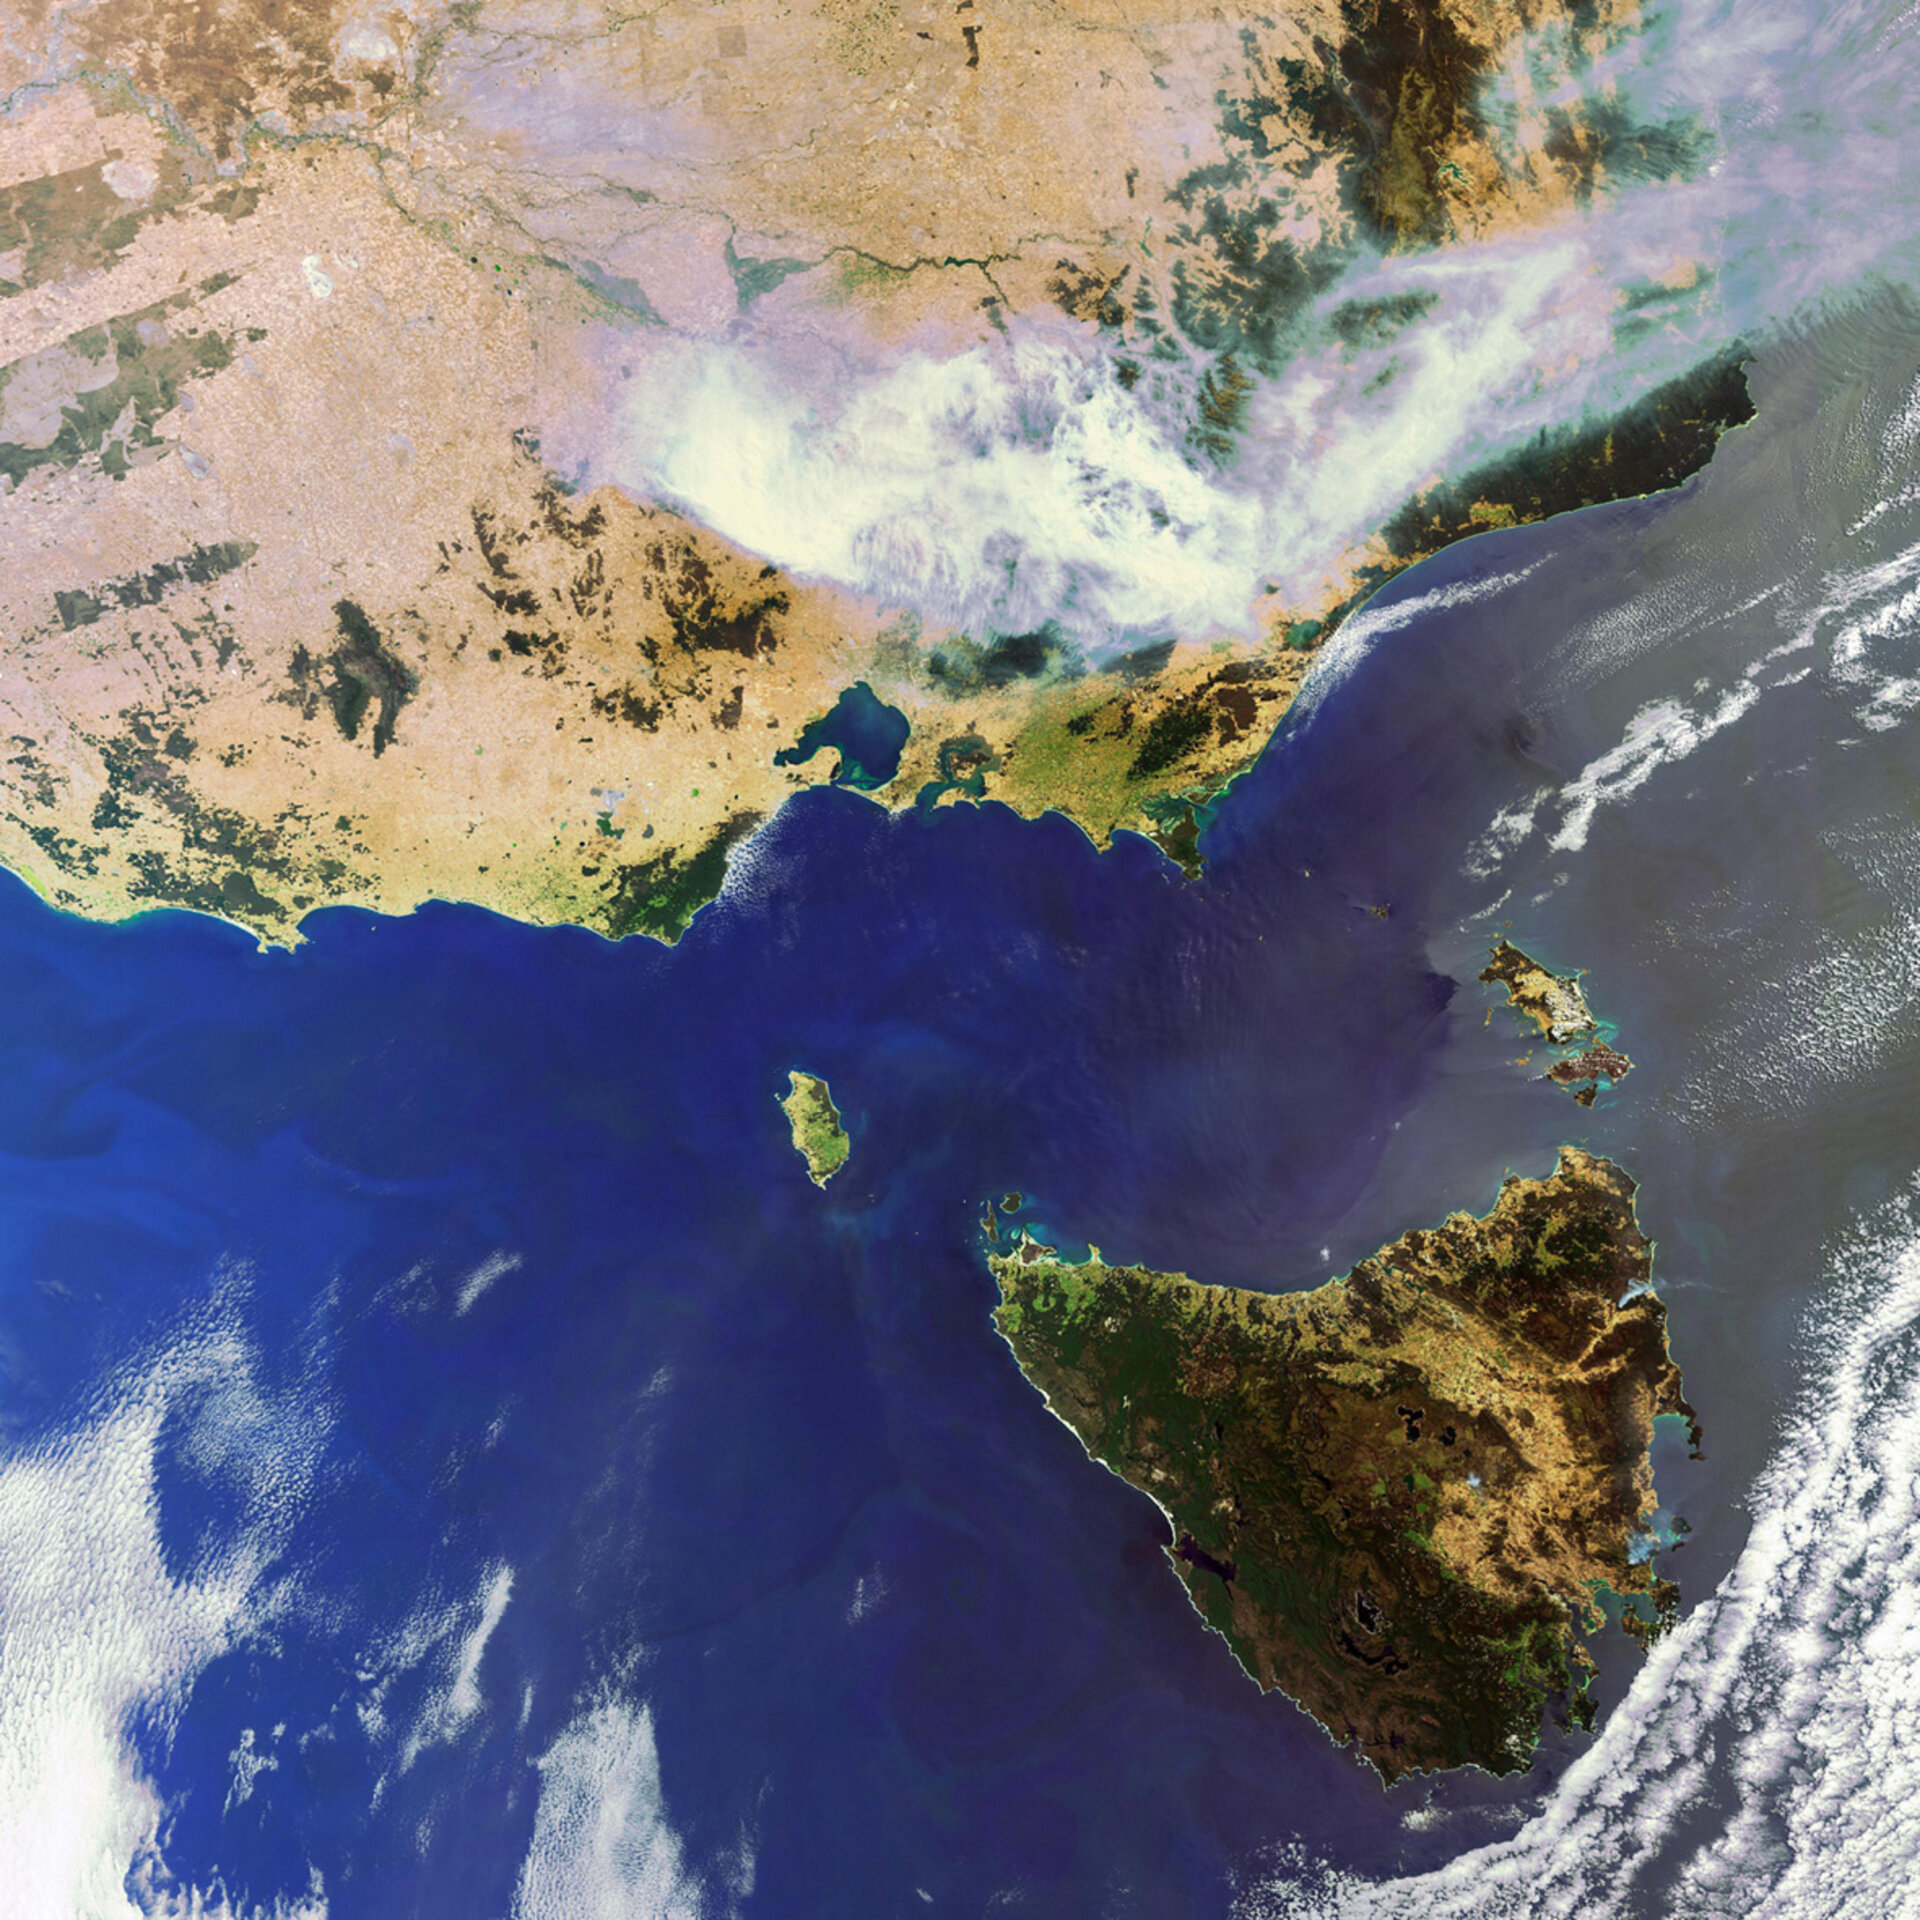 Smoke from fires over Australia captured by Envisat